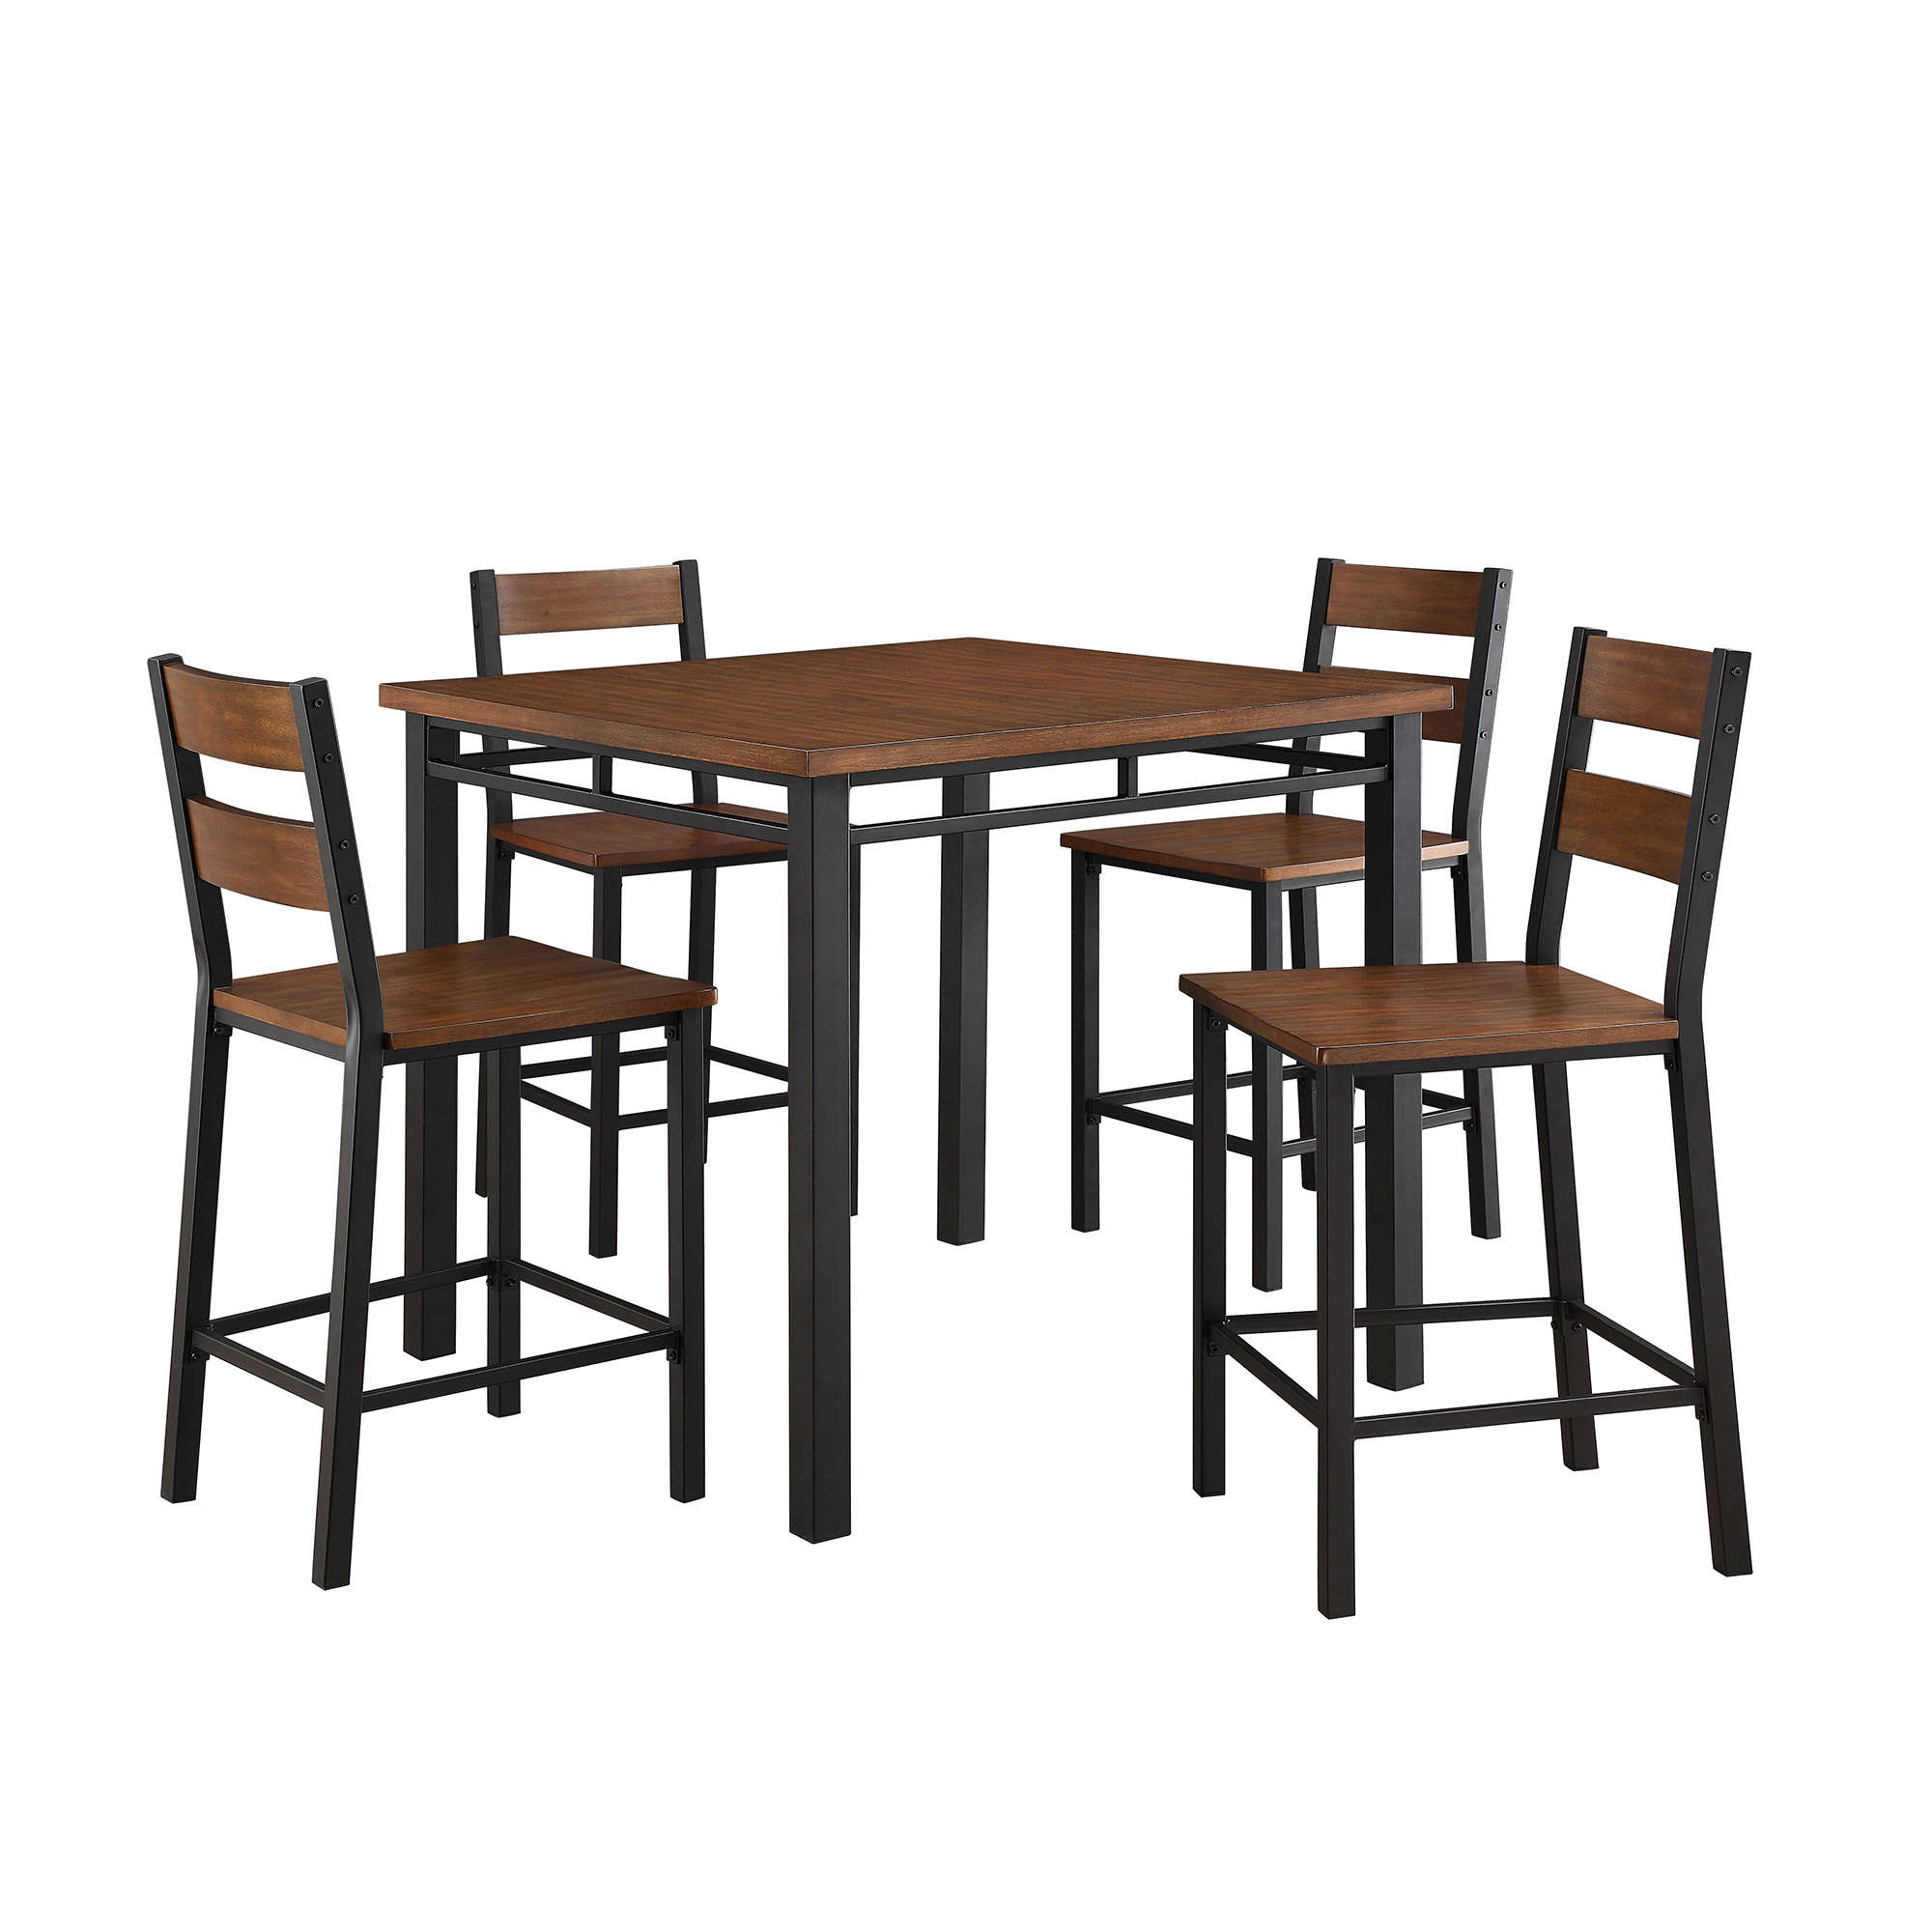 Better Homes \u0026 Gardens Mercer 5-Piece Counter Height Dining Set Includes Table and  sc 1 st  Walmart & Breakfast Nook Tables